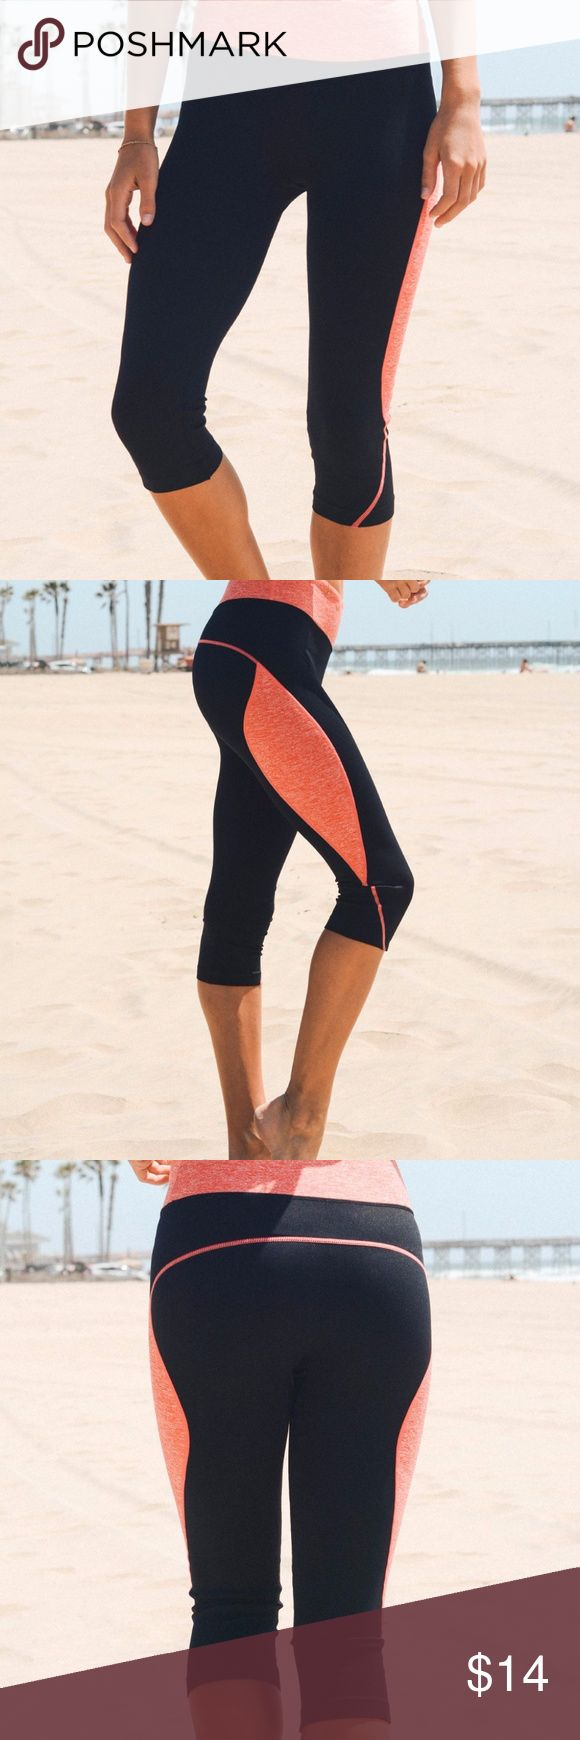 """Women's Black Coral Variegated Band Leggings These clean-cut leggings flaunt a statement waistband for standout style and patterned pop. Infused with stretch, they are a comfortable pick for your active-to-casual ensembles. 36"""" - 37"""" waist / 38"""" - 39"""" hips / fits size 8-10 78% nylon / 14% polyester / 8% spandex Machine wash Leto Collection Pants Track Pants & Joggers"""